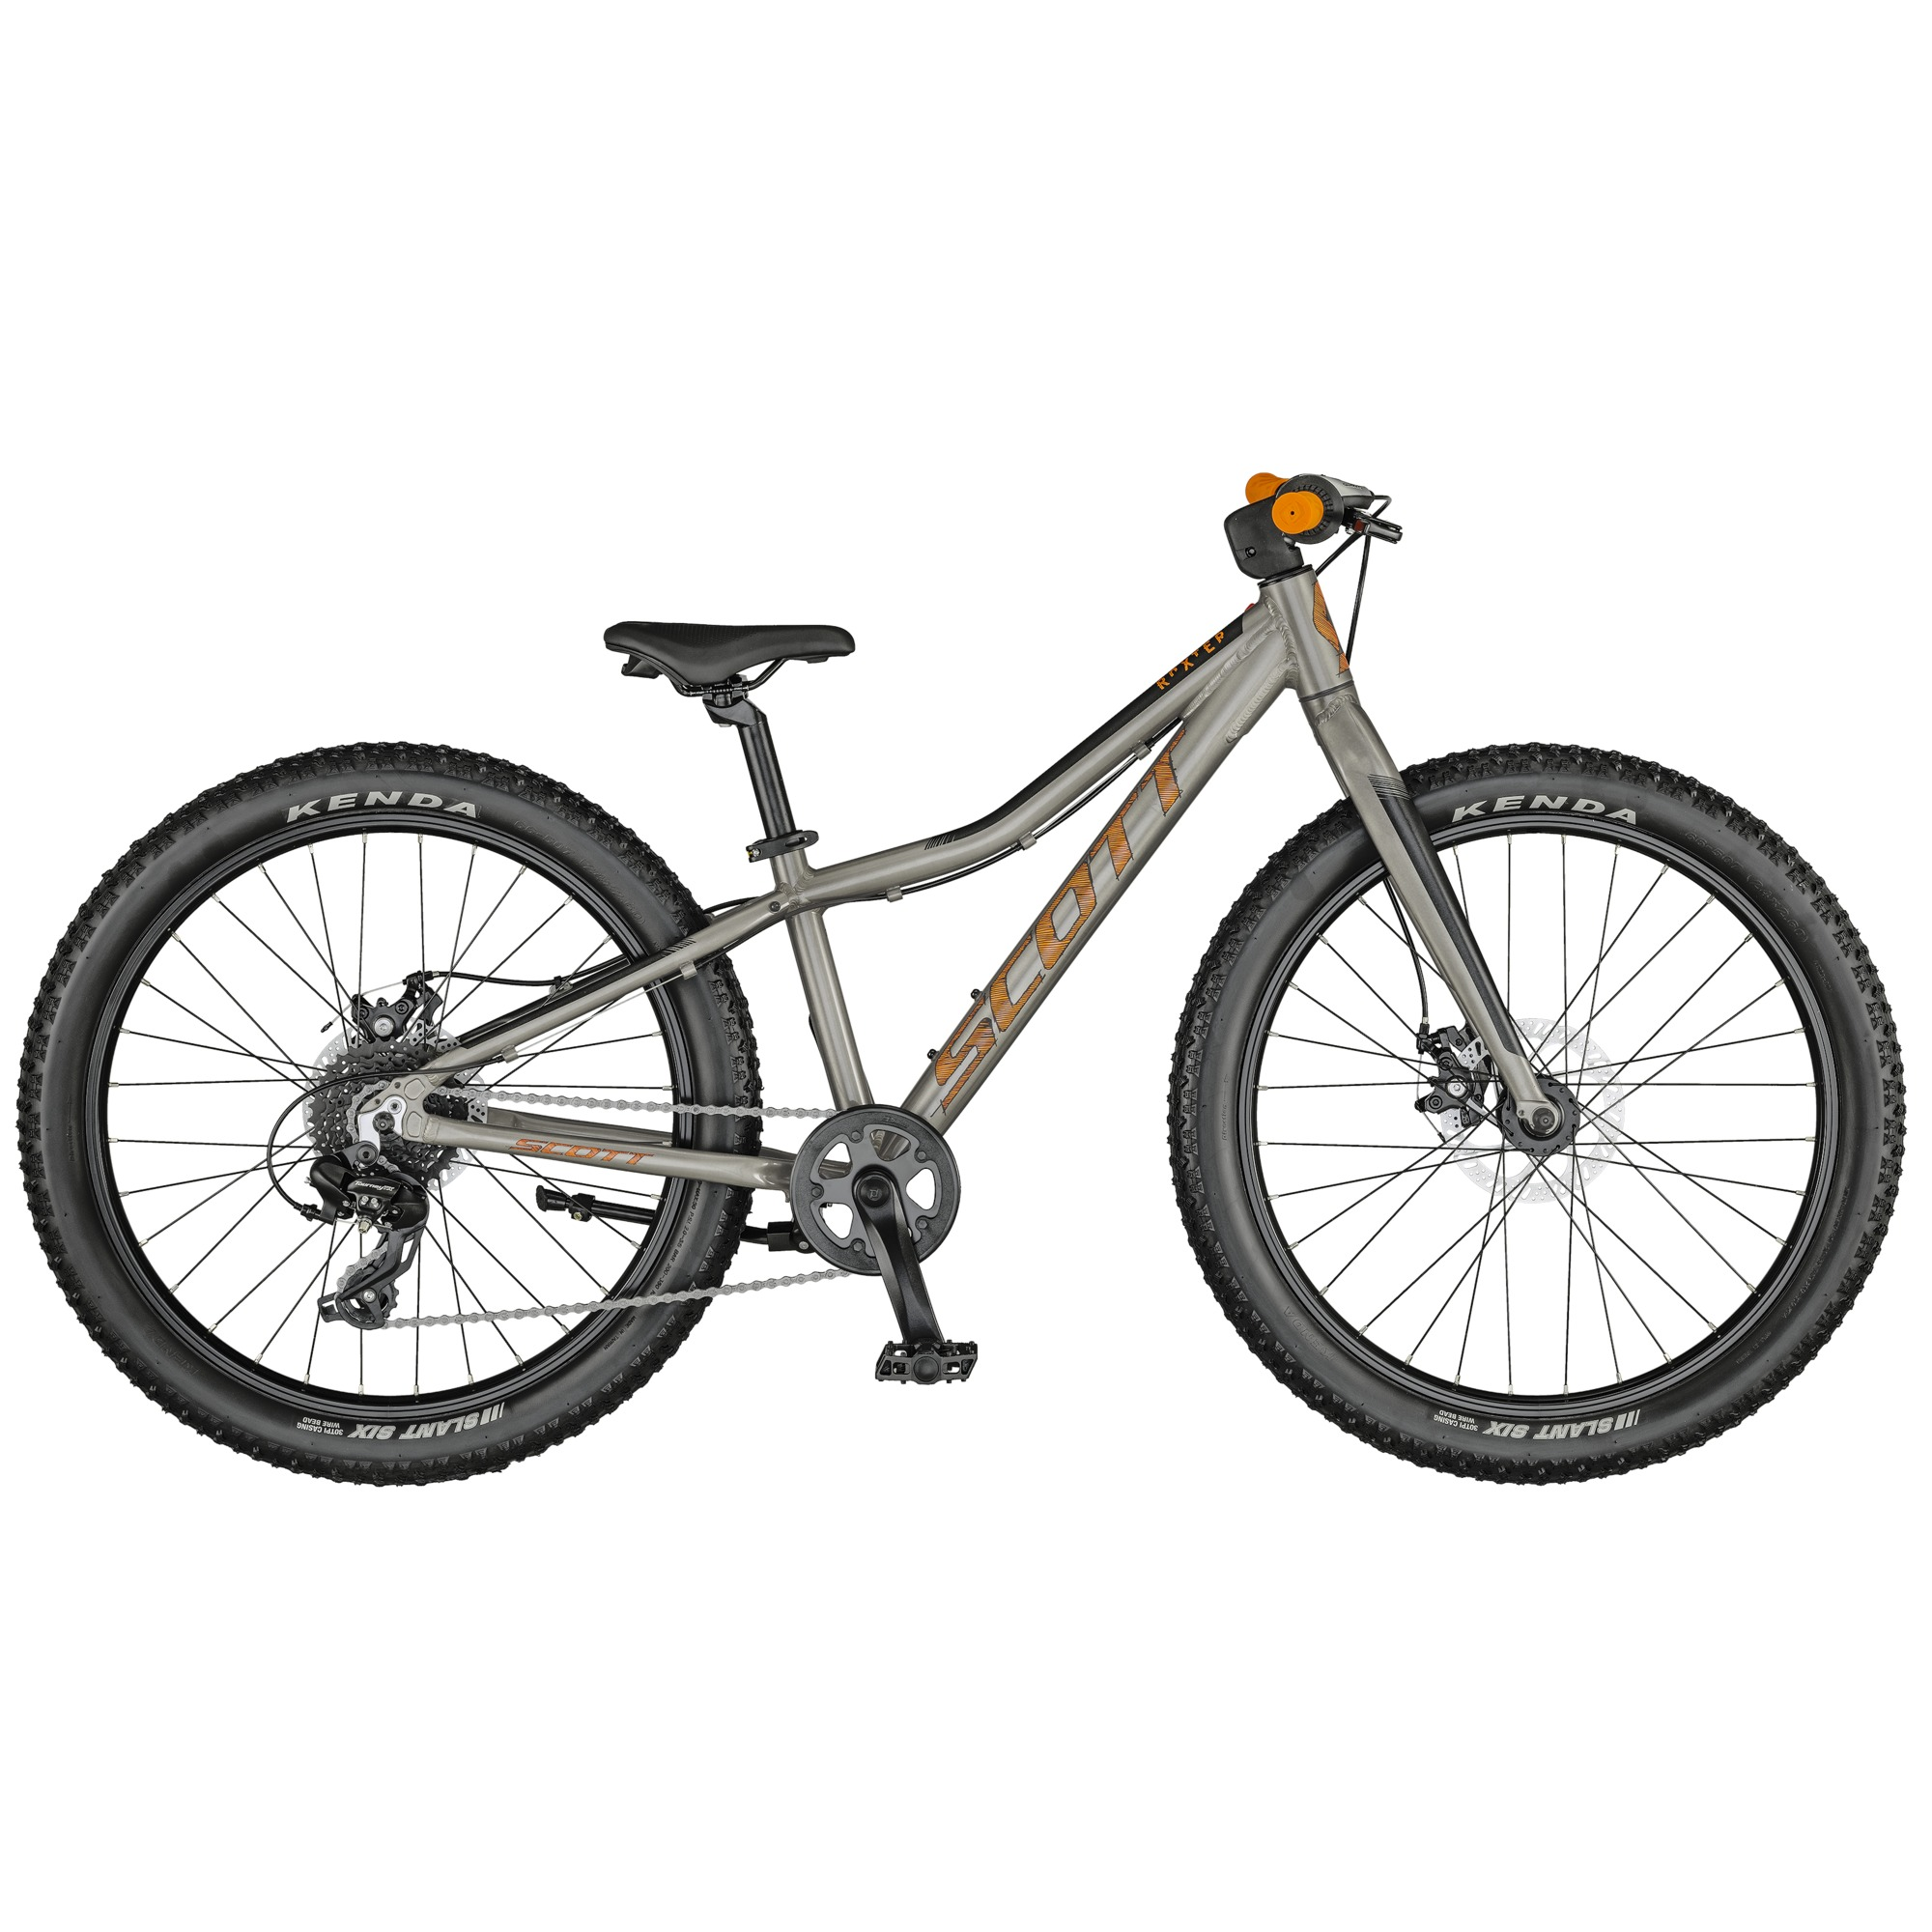 Scott kolo Roxter 24, Raw Alloy - 2021